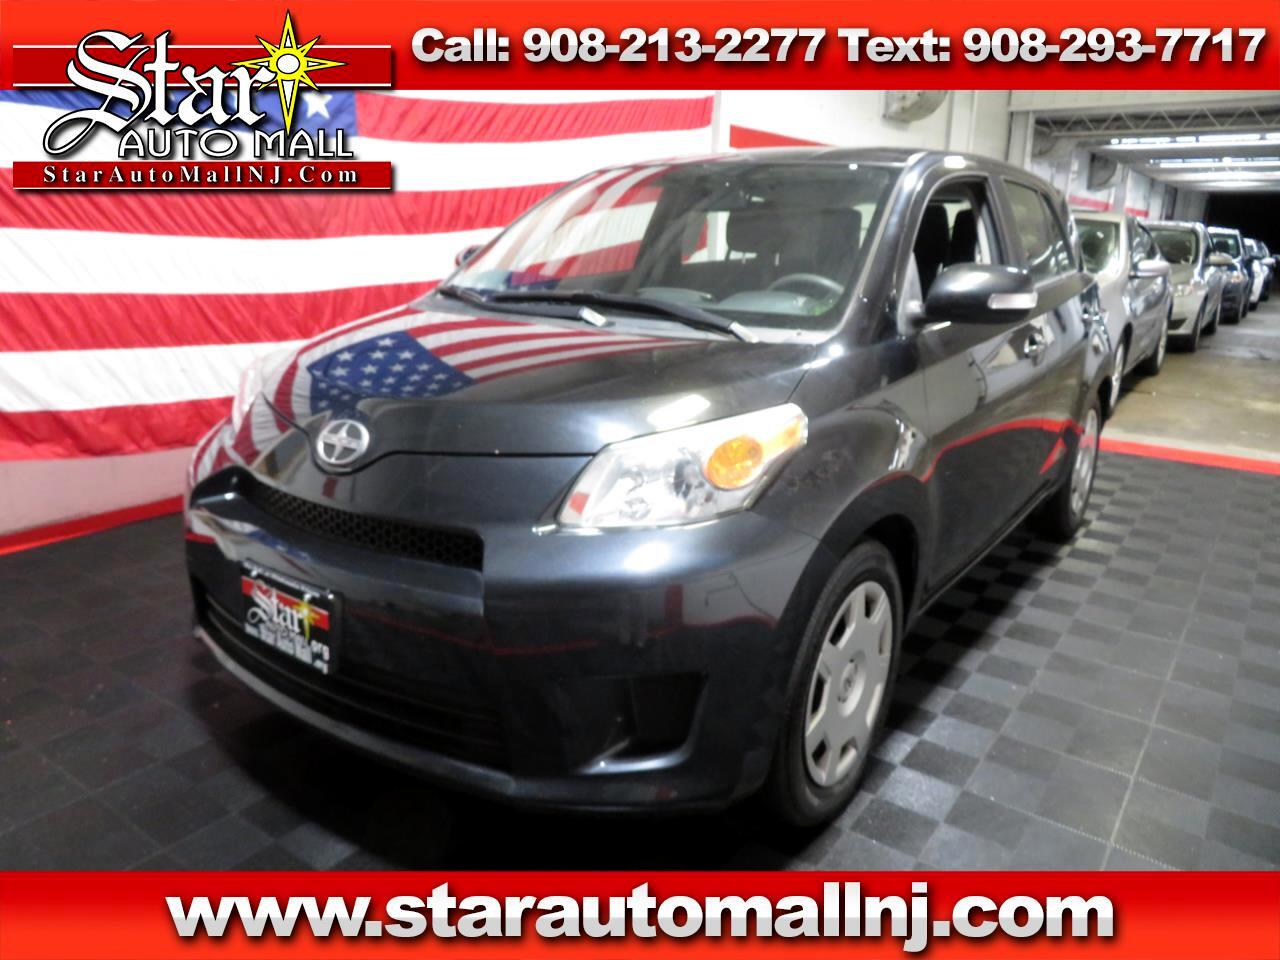 2013 Scion xD 5-Door